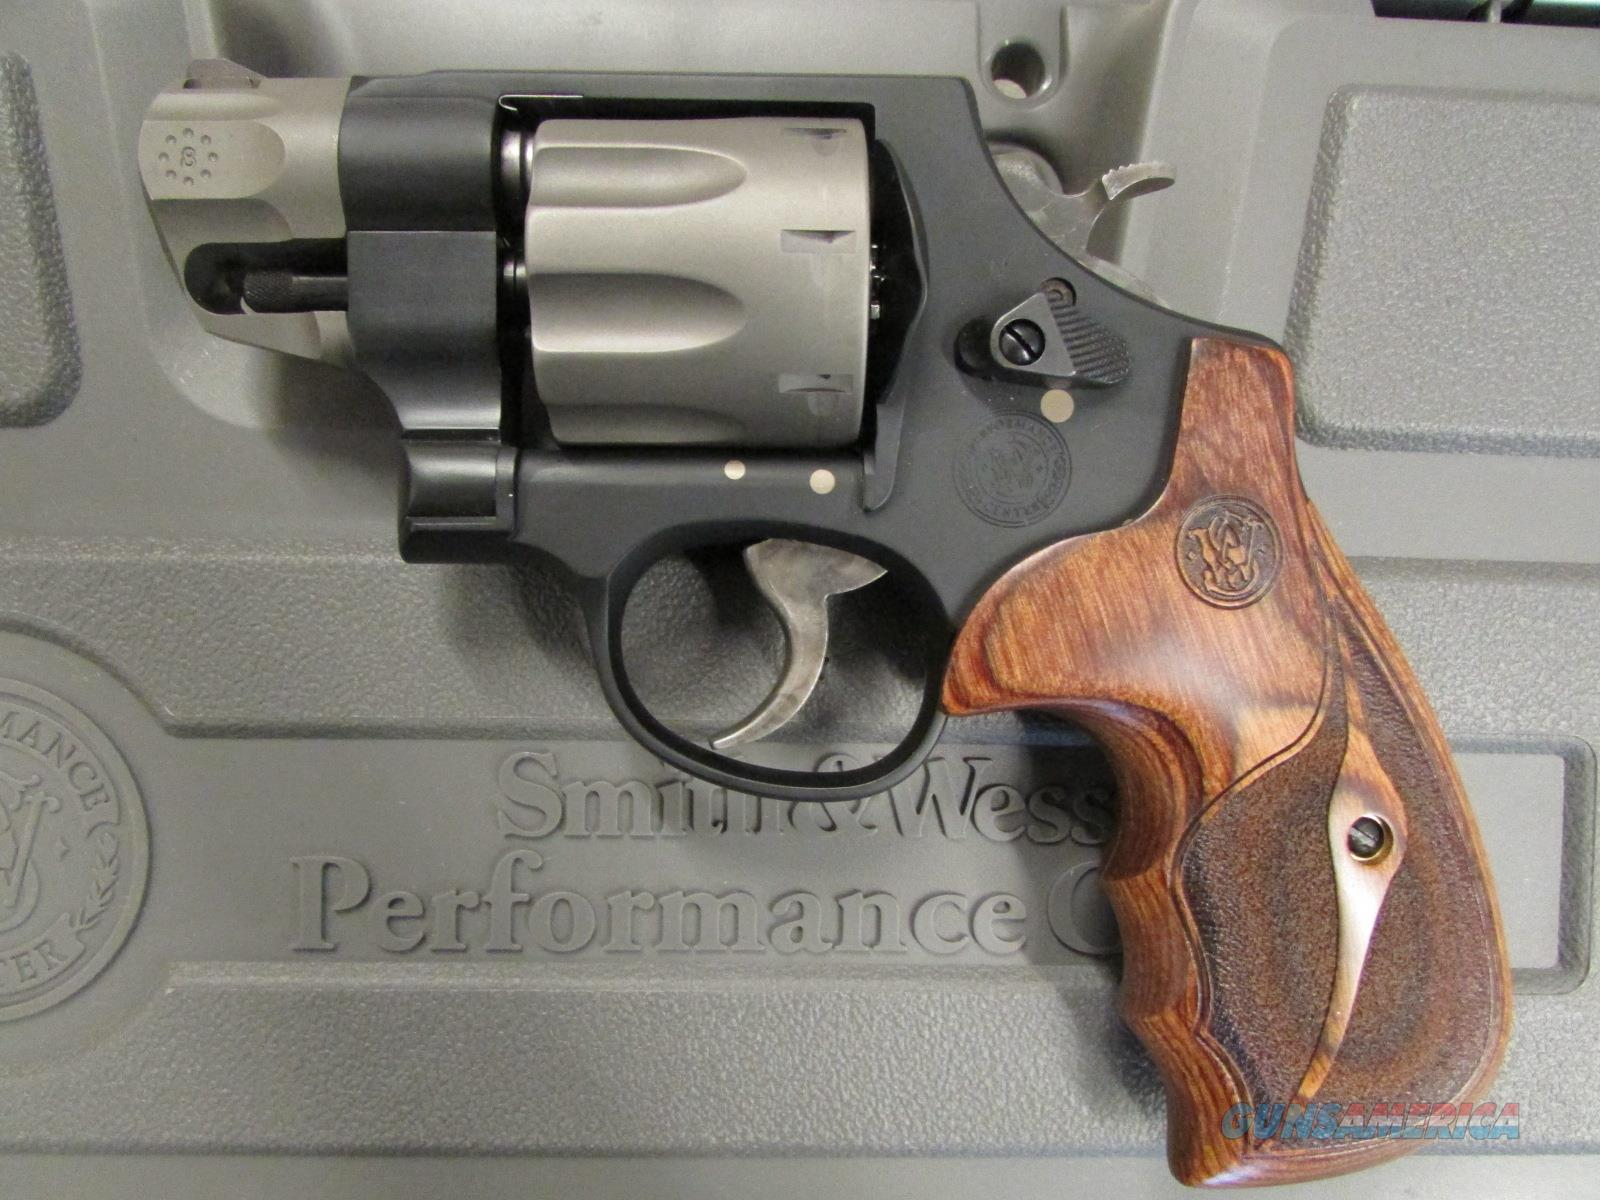 "Smith & Wesson 327 Performance Center .357 Mag 8 Shot 2"" 170245 *NEW*  Guns > Pistols > Smith & Wesson Revolvers > Performance Center"